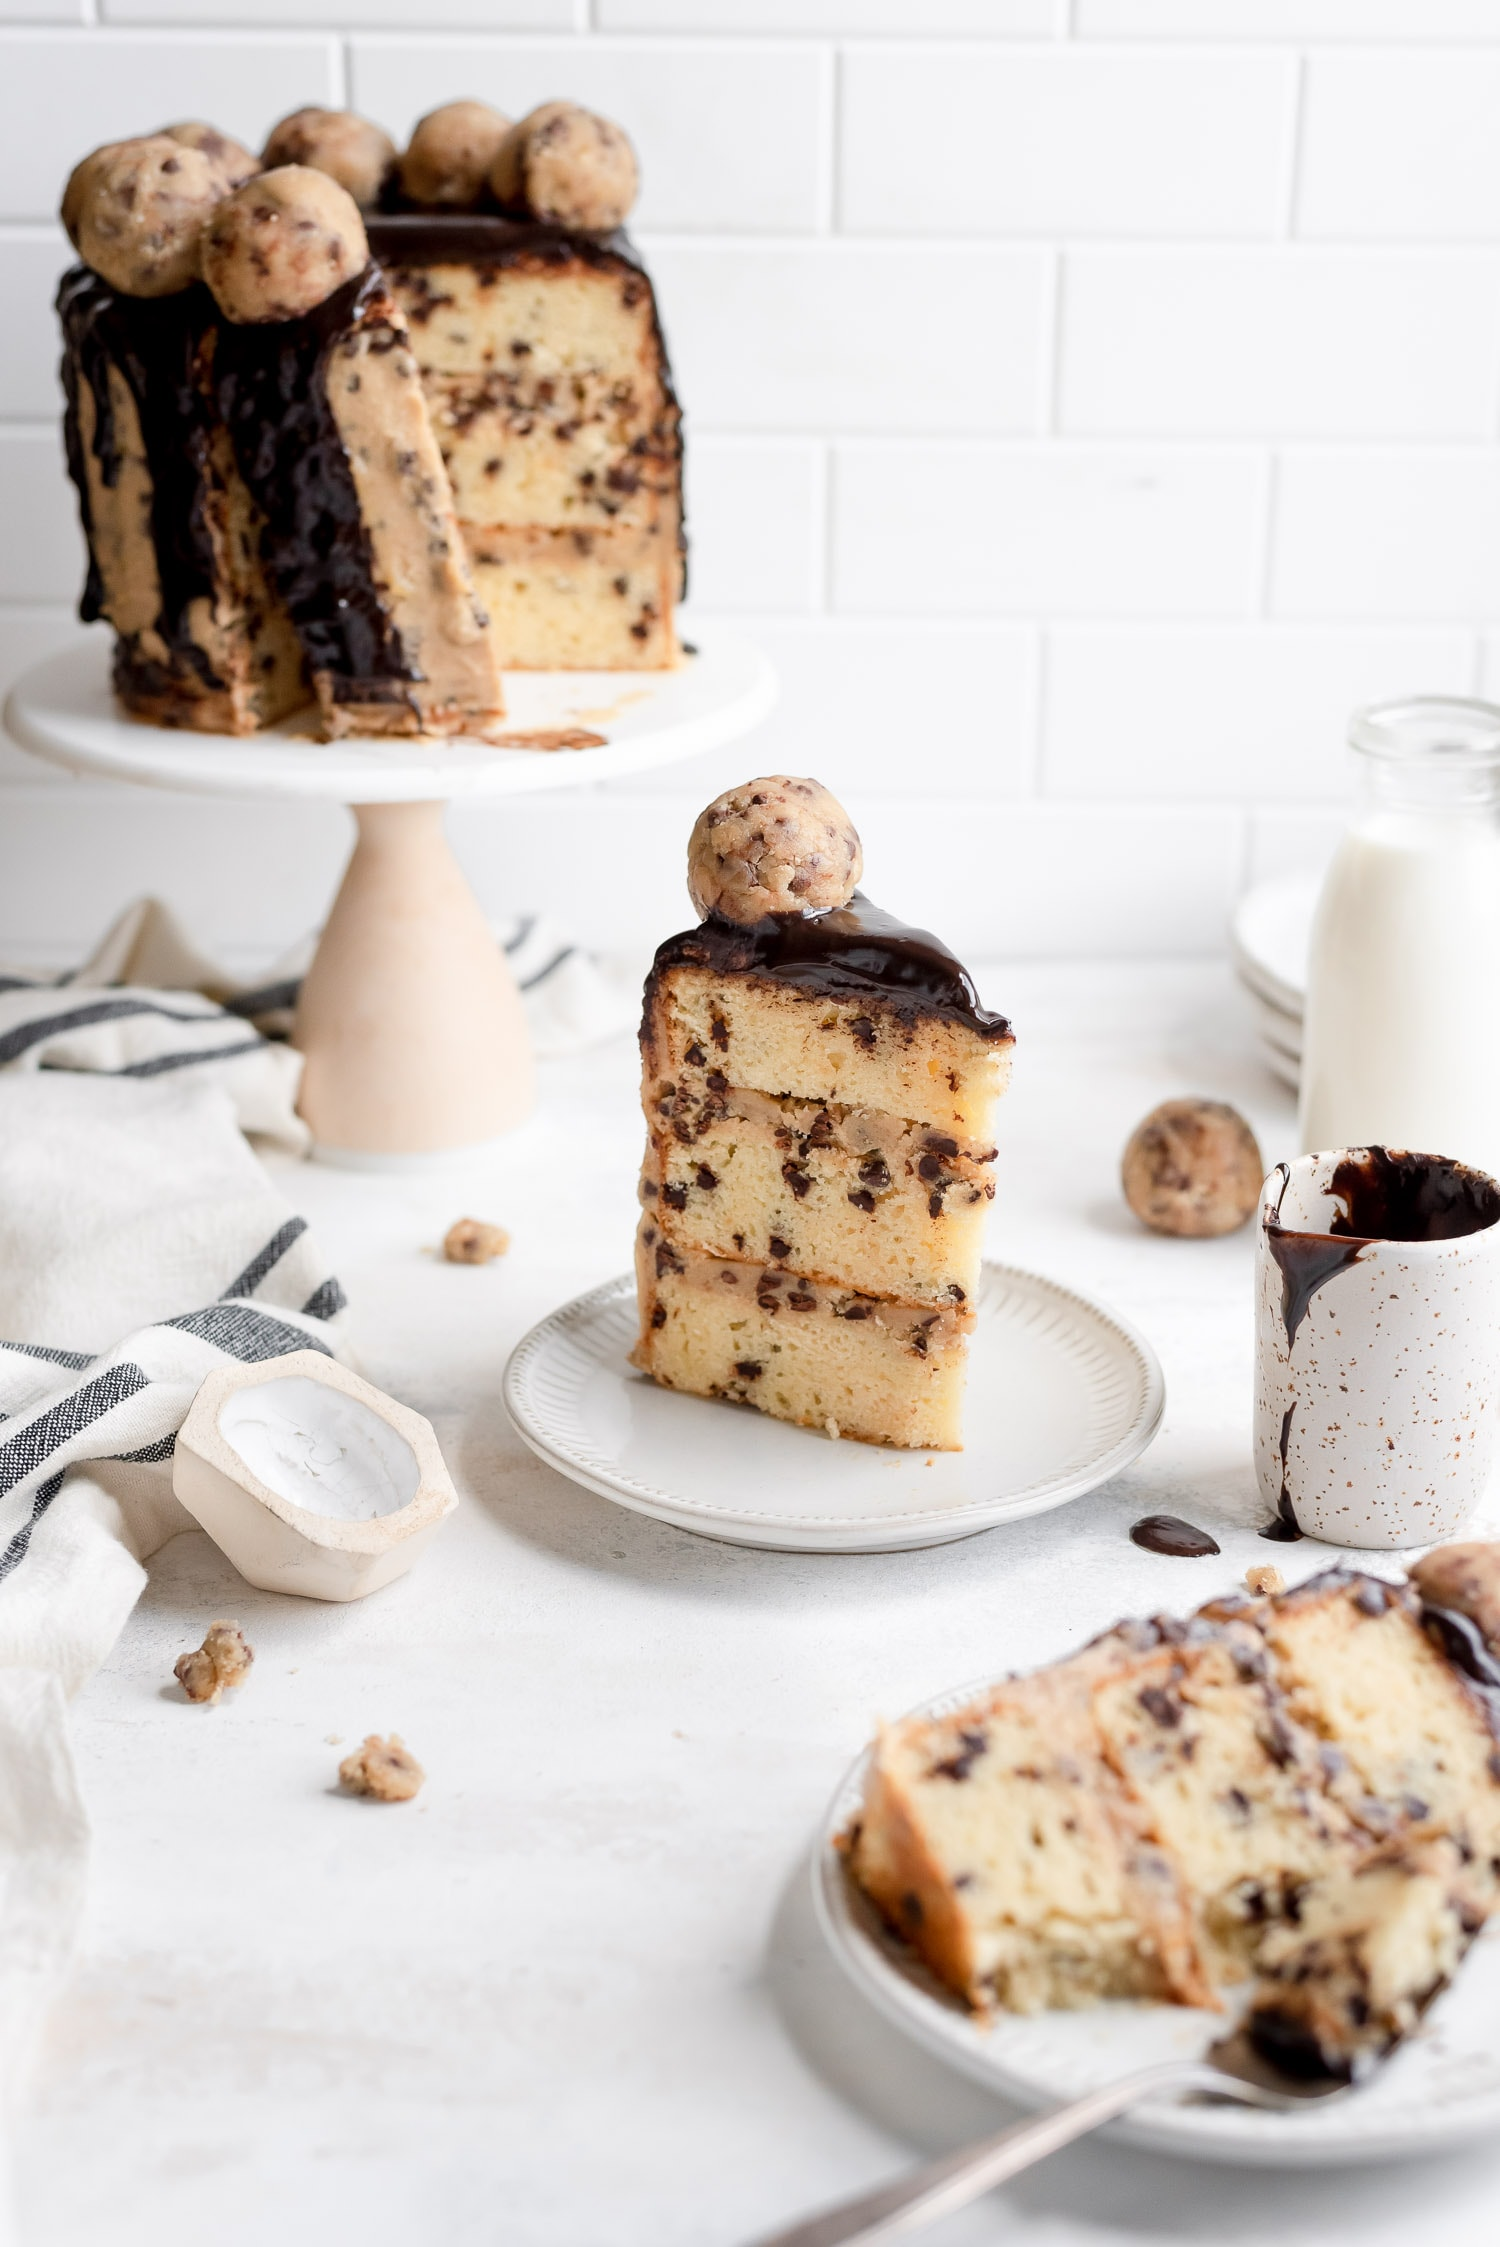 cake on plates by cake stand